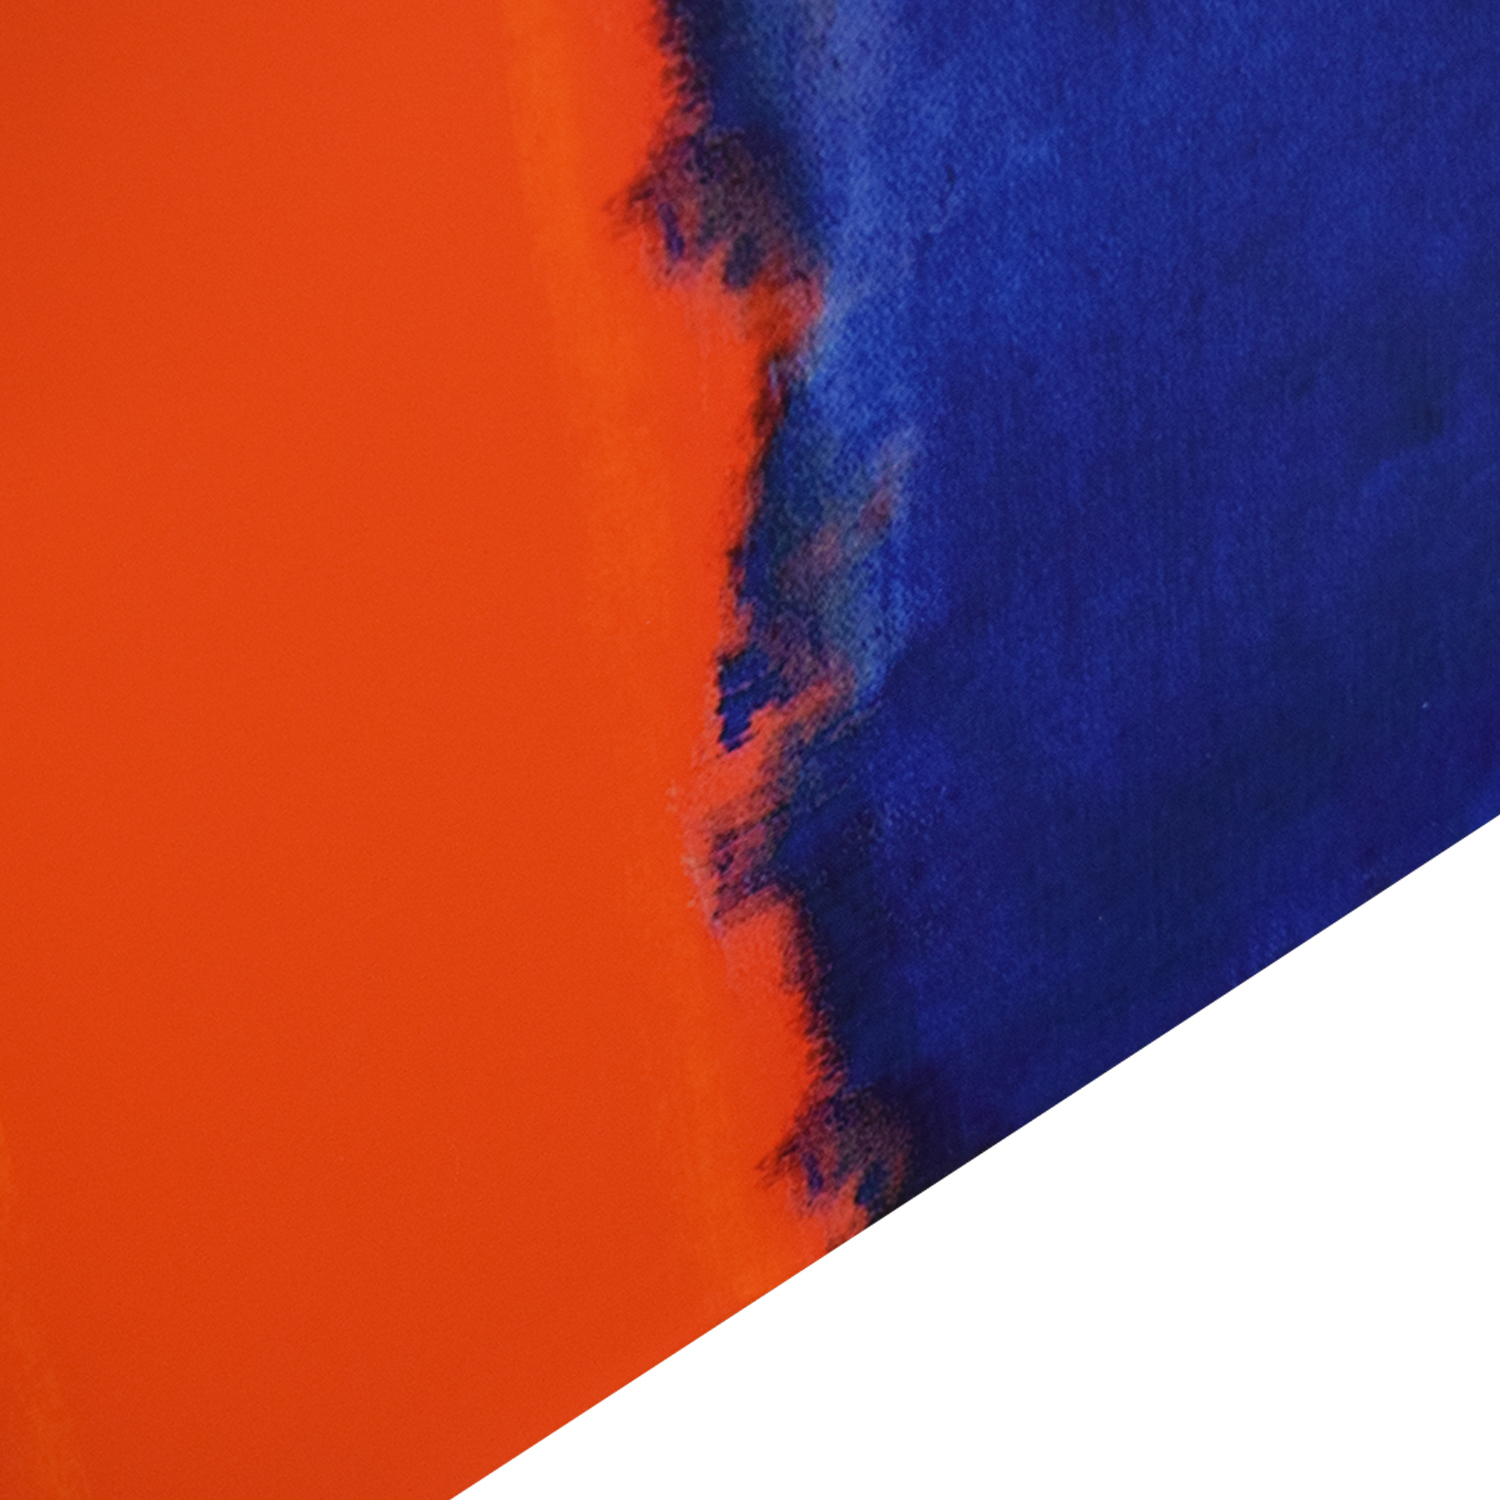 buy Vibrant Blue and Orange Painting  Wall Art